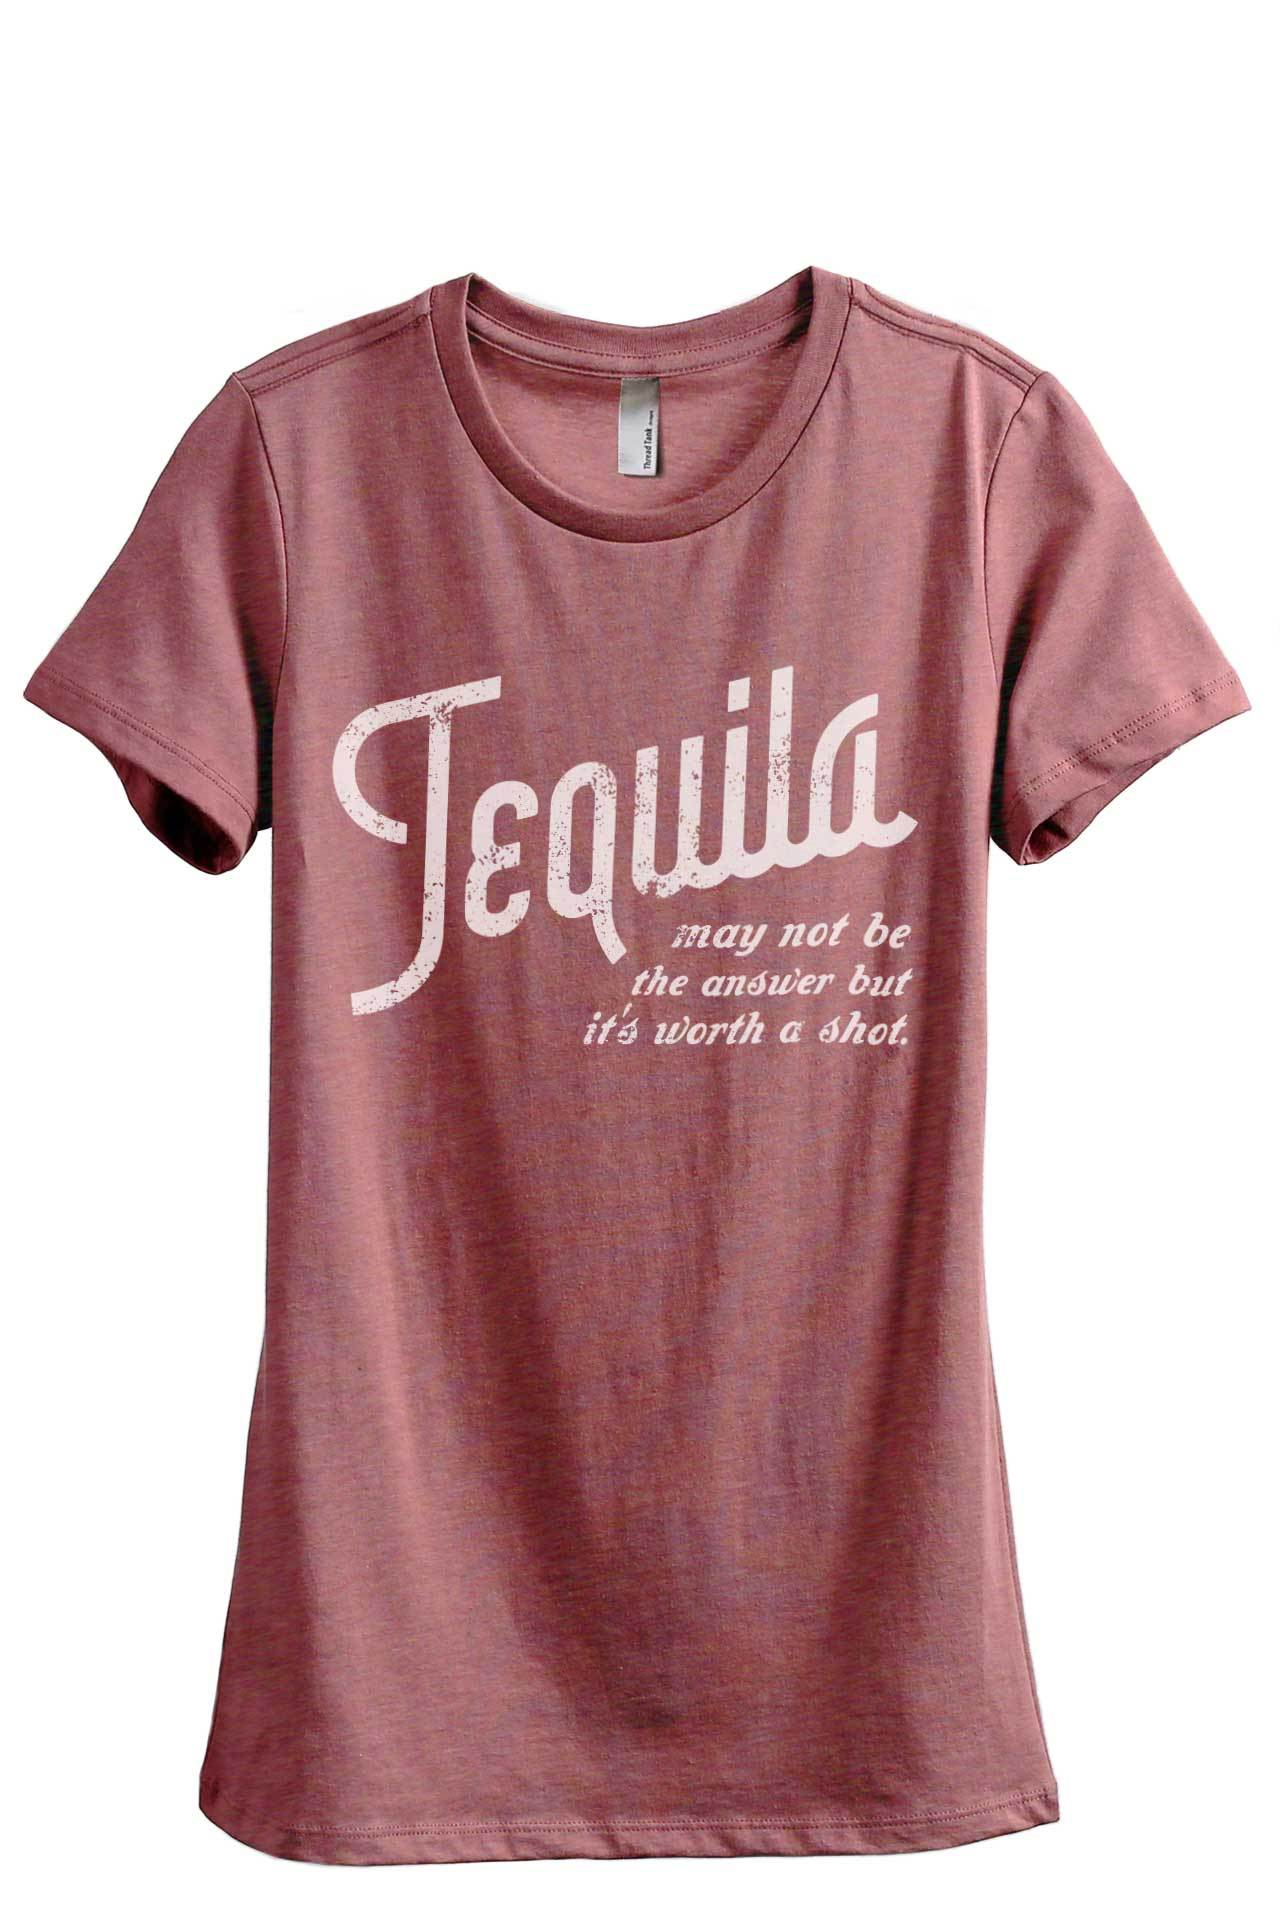 Tequila May Not Be The Answer But It's Worth A Shot Women's Relaxed Crewneck T-Shirt Top Tee Heather Rouge